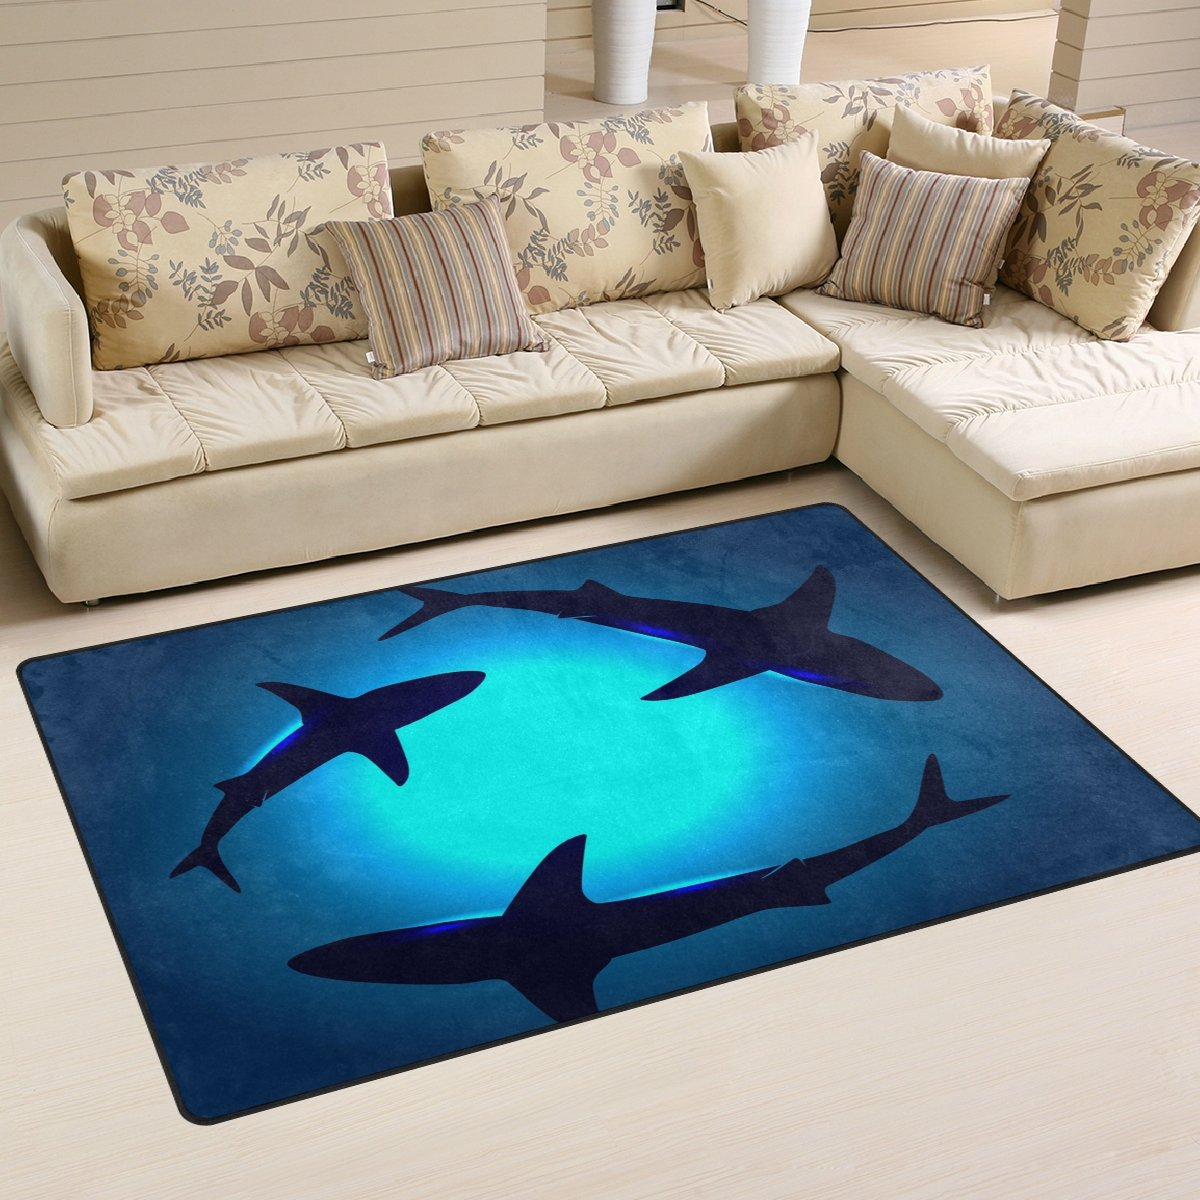 Naanle Ocean Animal Sharks Non Slip Area Rug for Living Dinning Room Bedroom Kitchen, 3 x 5 39 x 60 Inches , Shark Nursery Rug Floor Carpet Yoga Mat